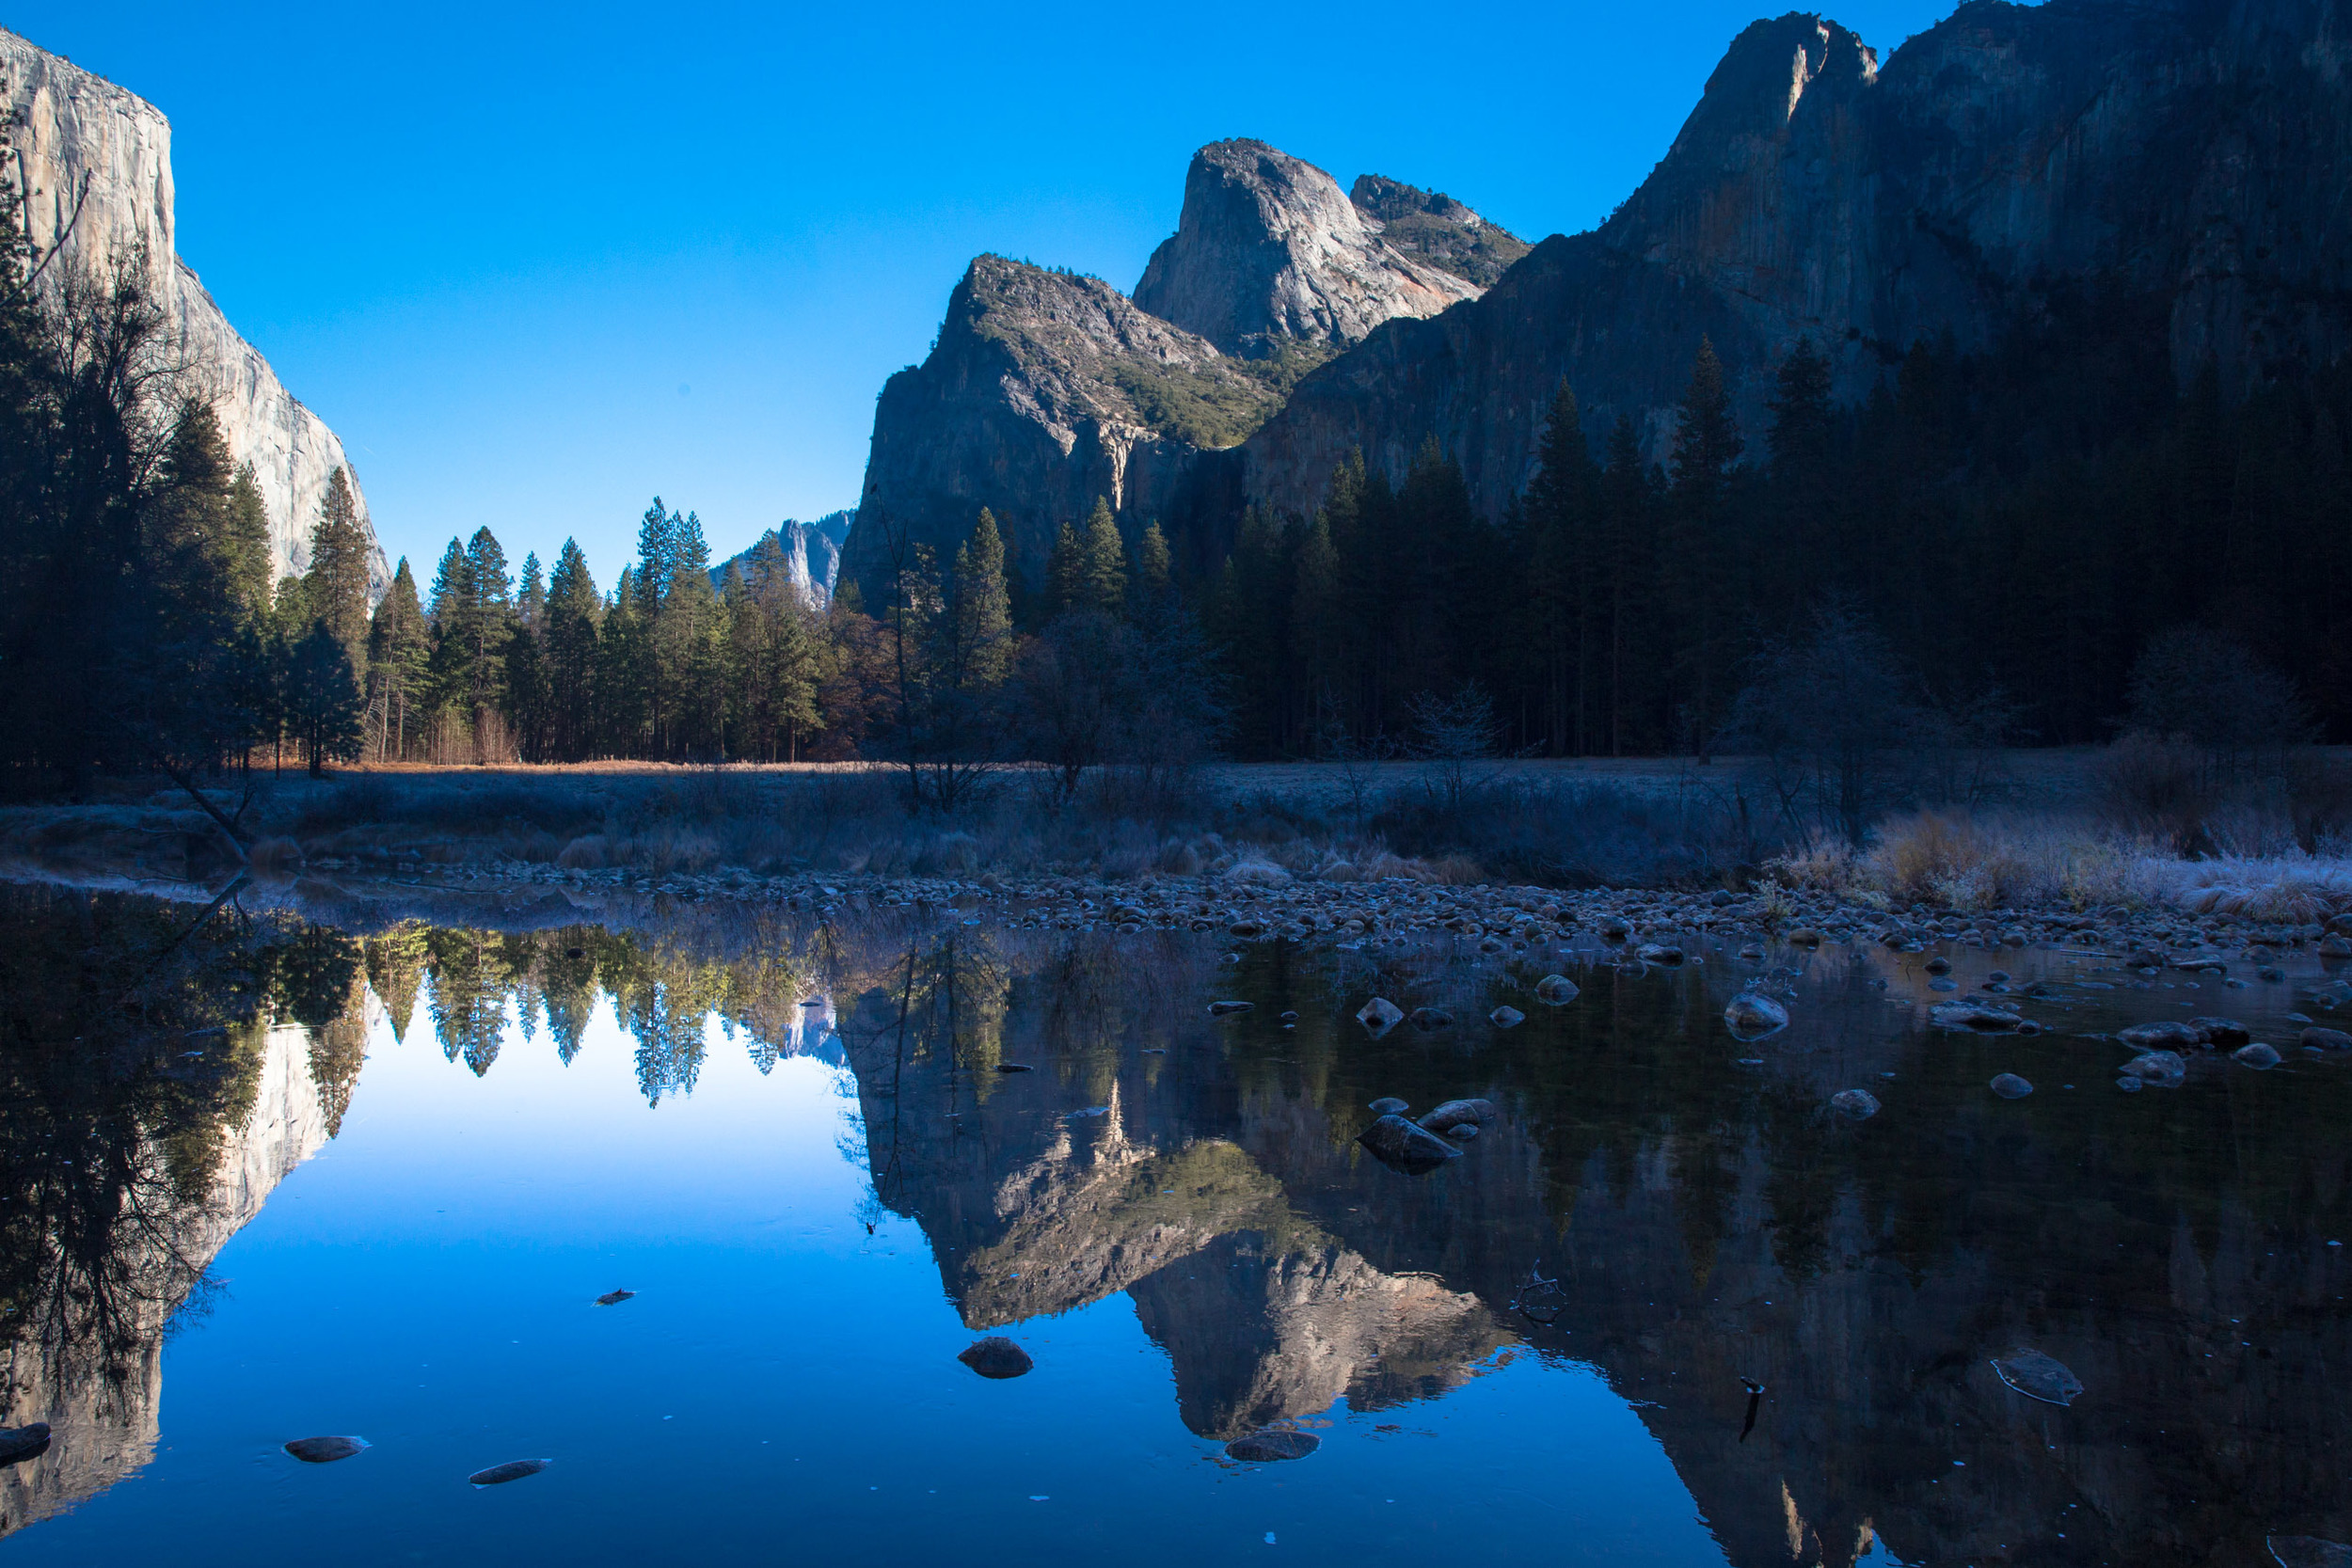 Yosemite valley. El Capitan on left and a very miserly Bridalveil Fall centre right, taken late Fall.